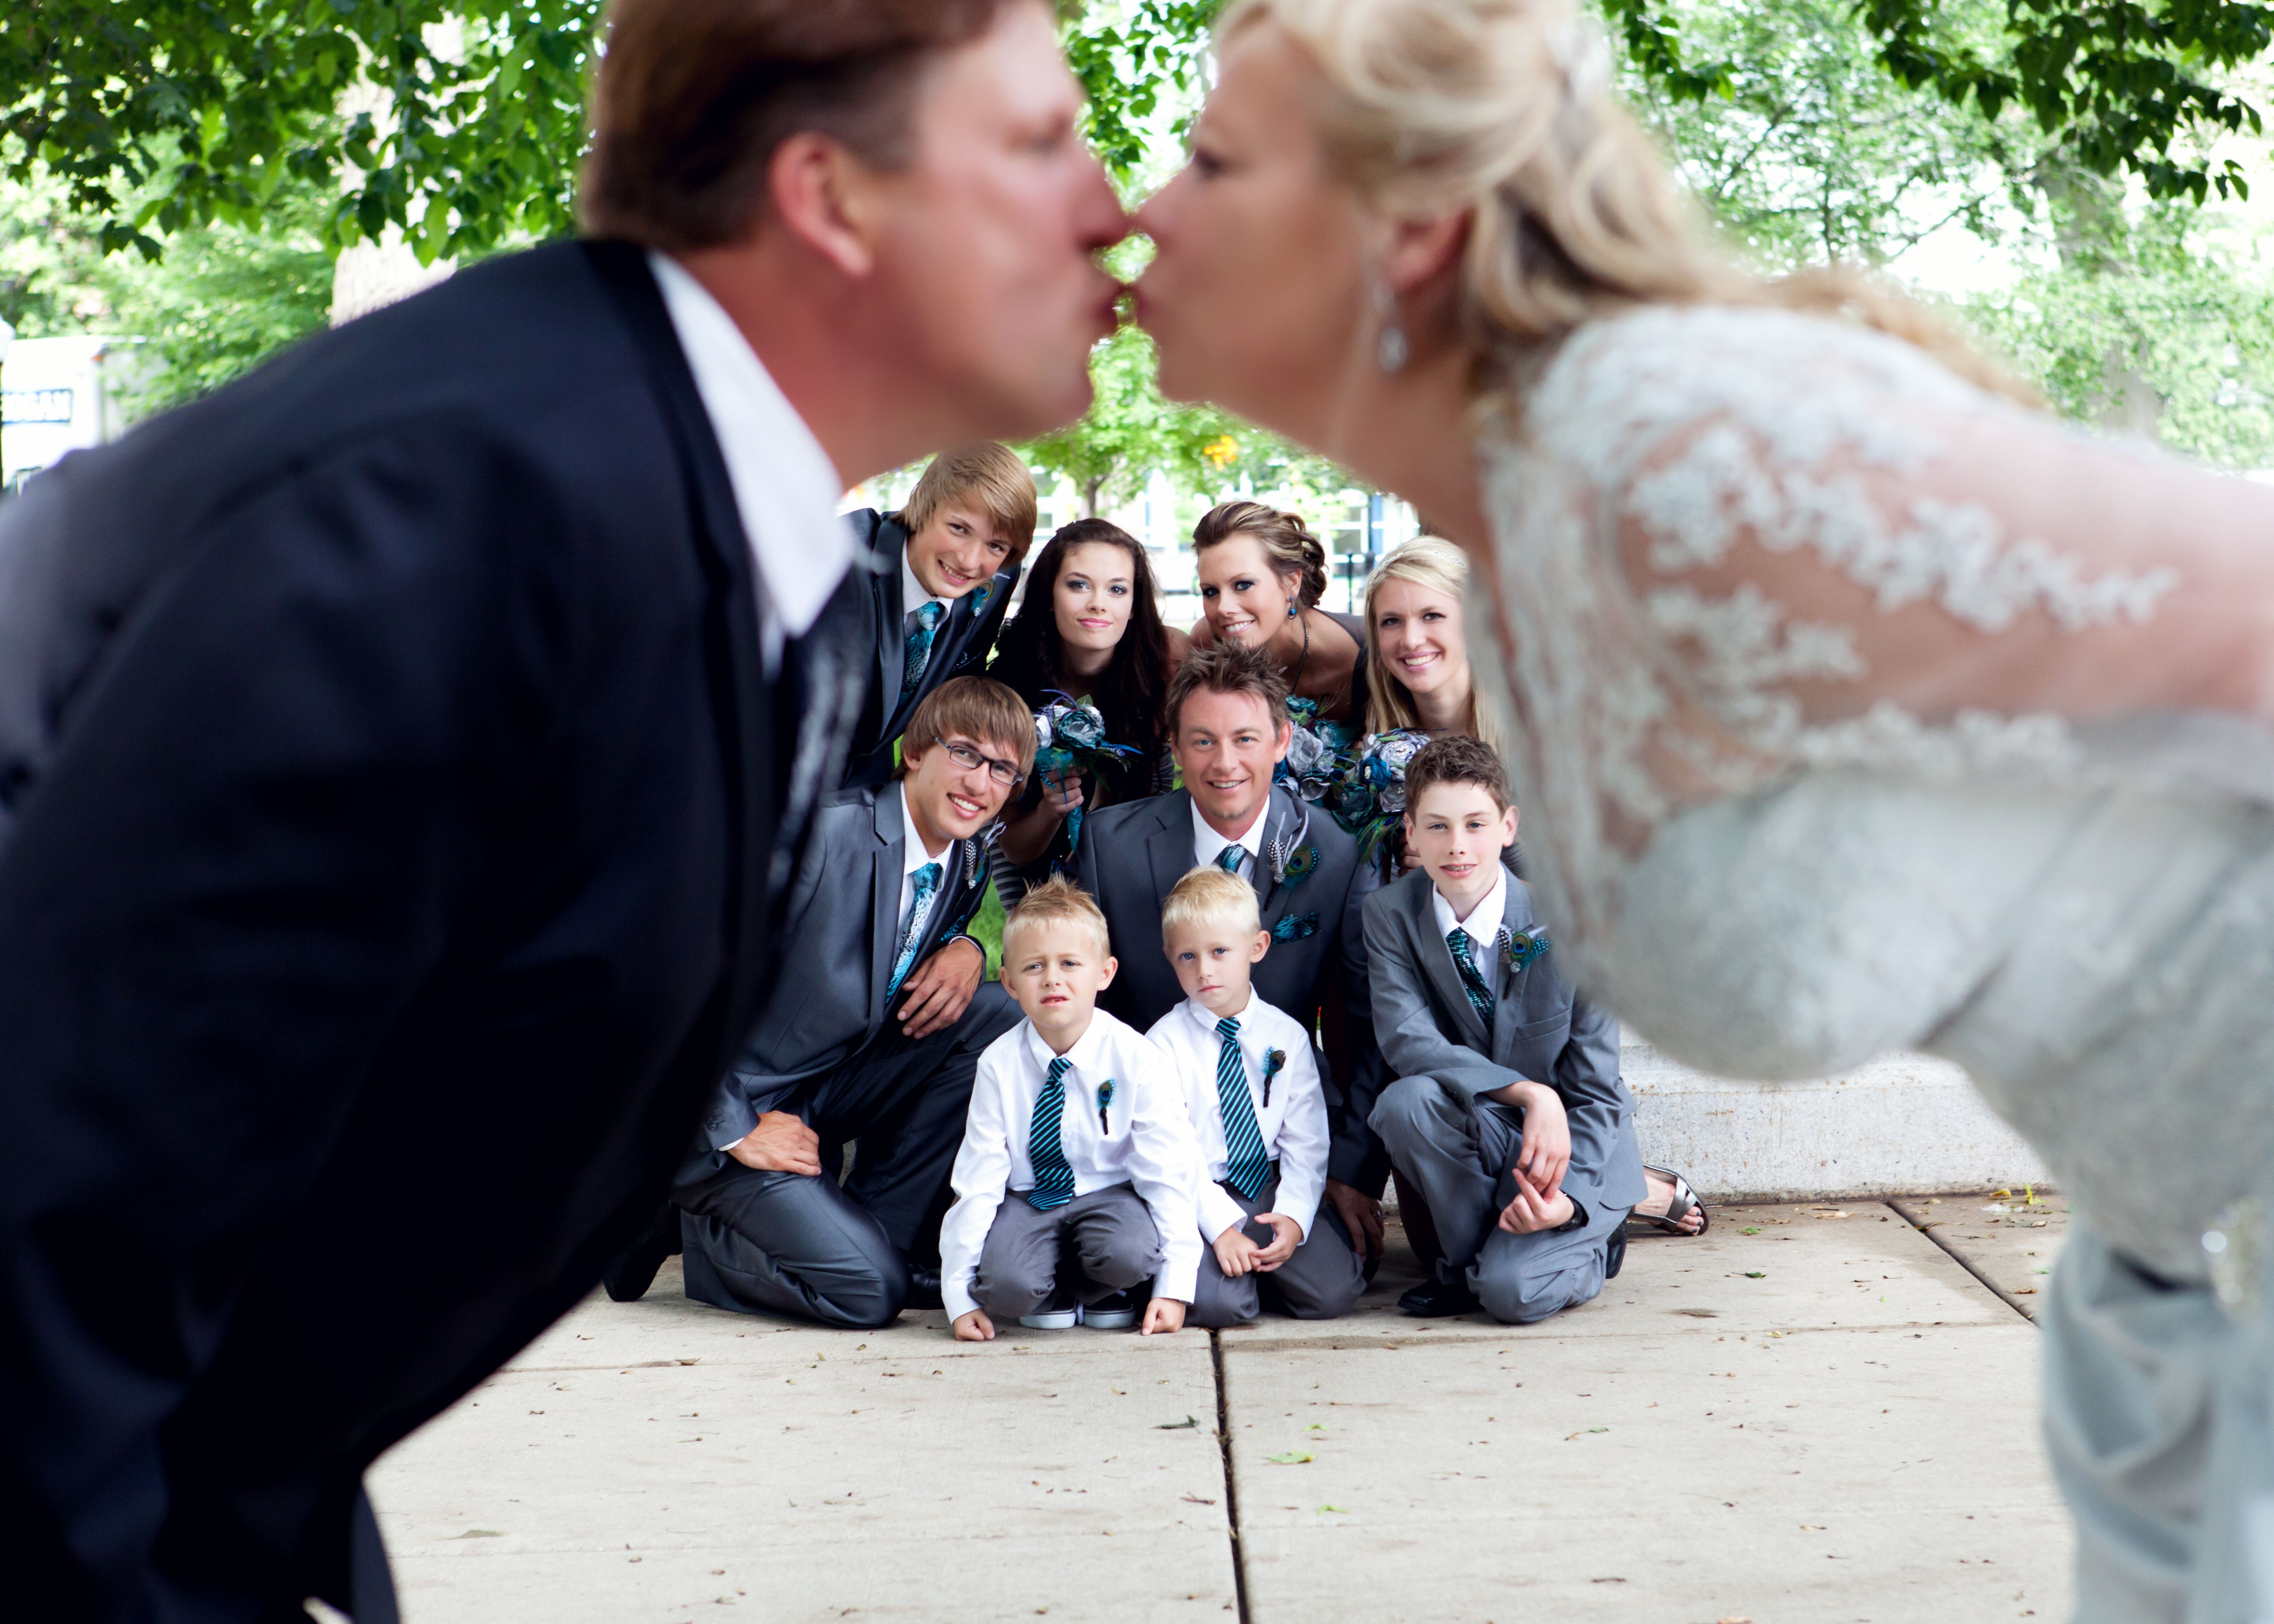 Pin By Sherry Lucy On Photography Wedding Picture Poses Family Wedding Photos Blended Family Wedding